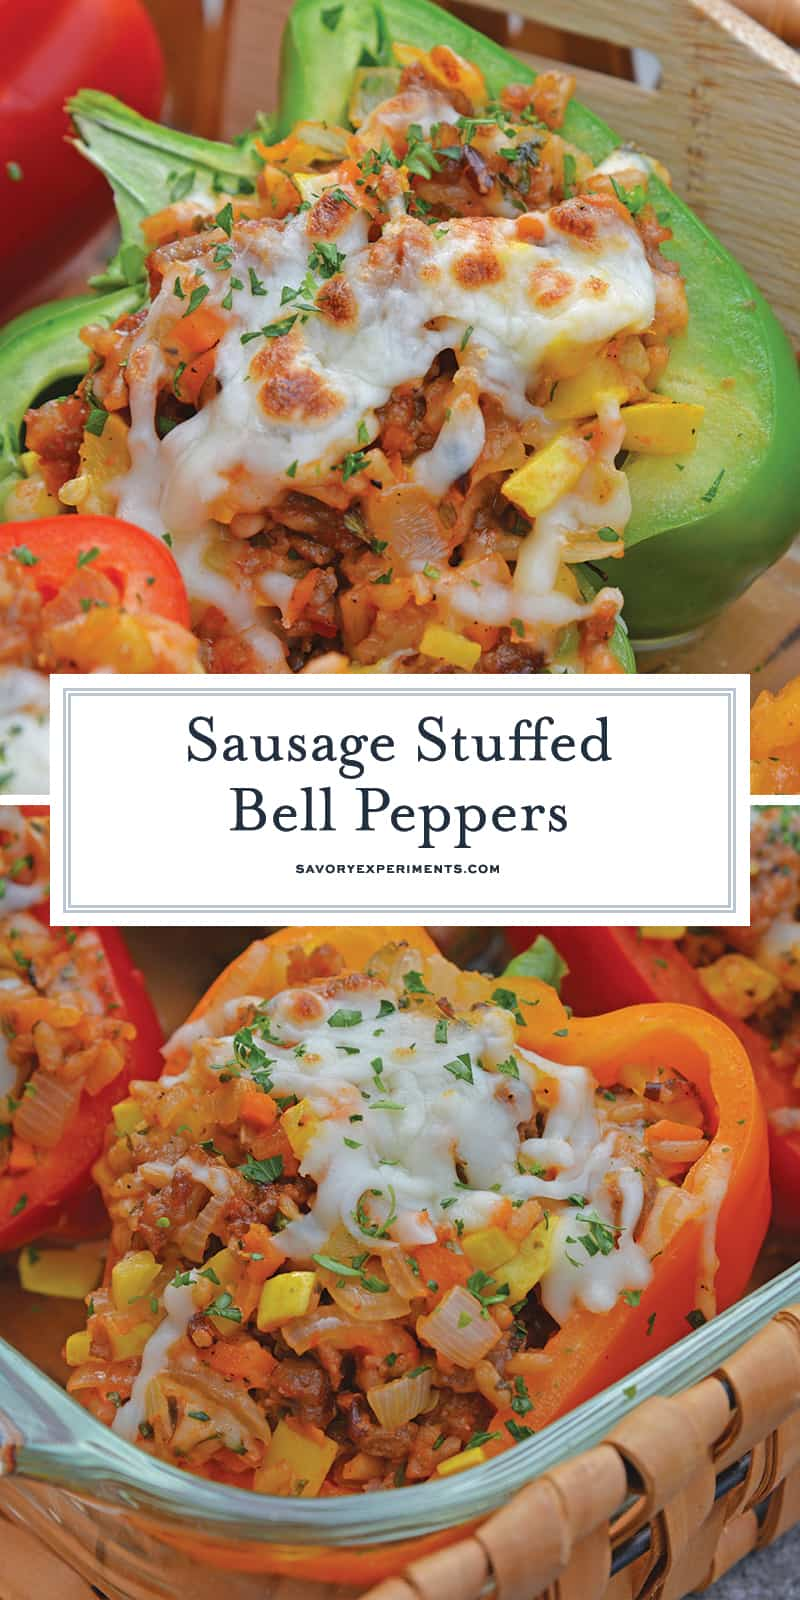 Sausage Stuffed Bell Peppers are a classic Italian dish using stuffed peppers with rice, sausage and lots of colorful vegetables. This make ahead dinner recipe will be a family favorite. #makeaheaddinner #stuffedbellepeppers www.savoryexperiments.com